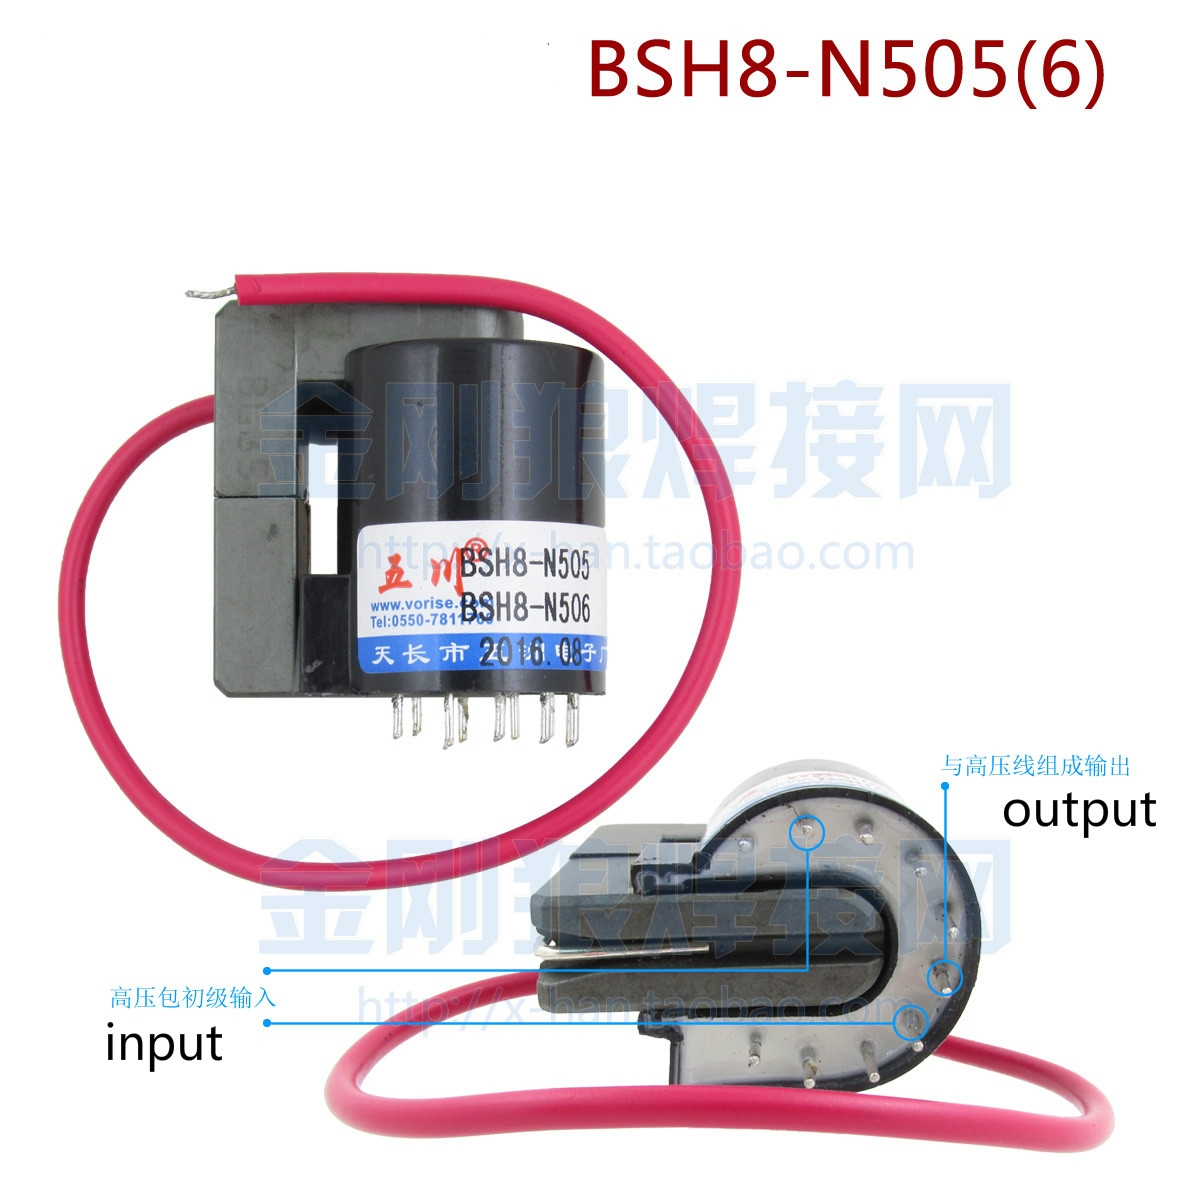 BSH8-N505 BSH8-N506 Special High Pressure Package For Argon Arc Welding Machine 10 Feet